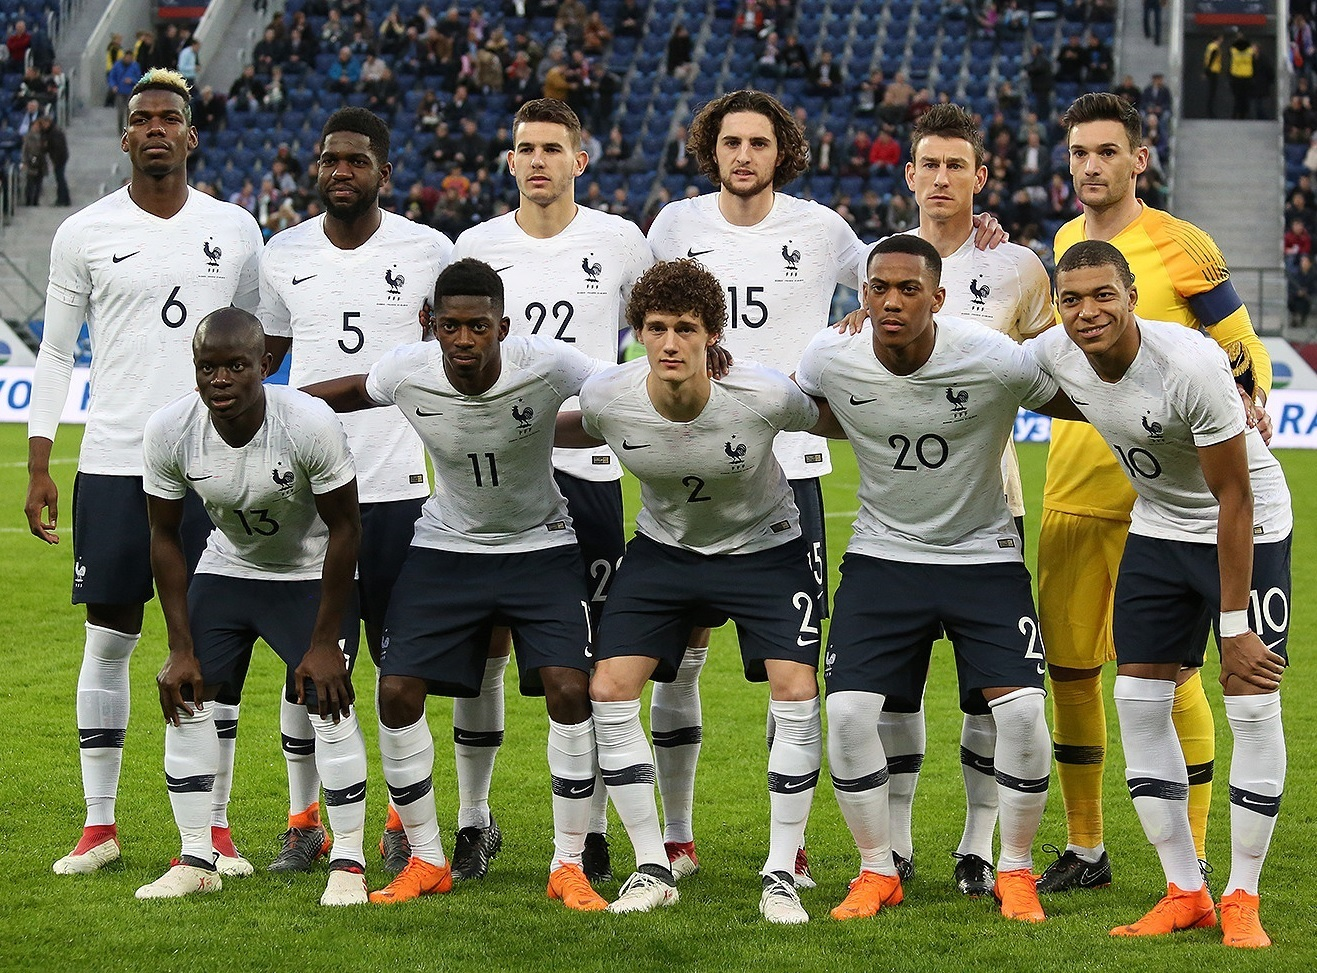 France-2018-NIKE-away-kit-white-navy-white-line-up.jpg